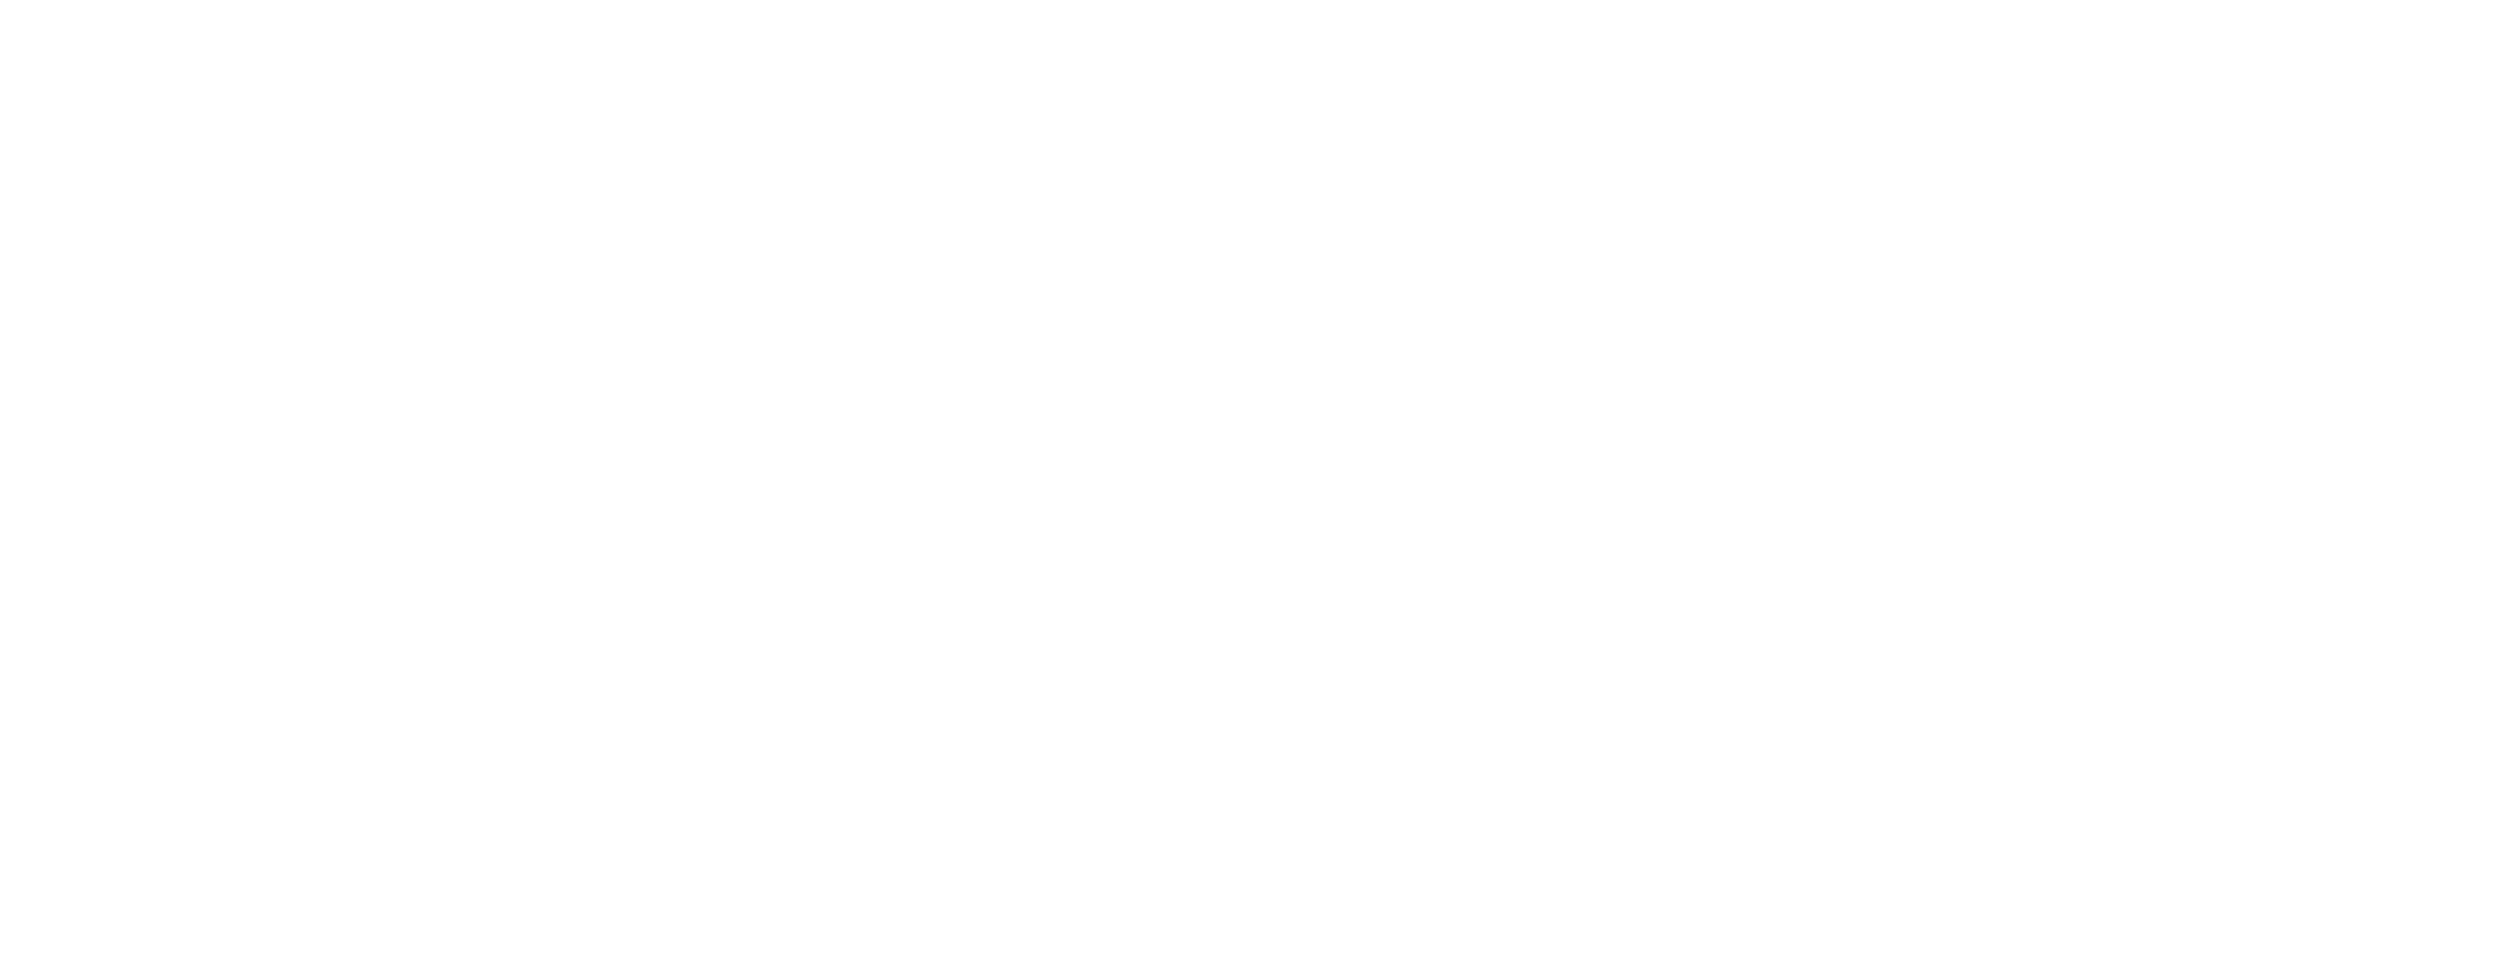 OceanSOS_logo-title-01-01.png